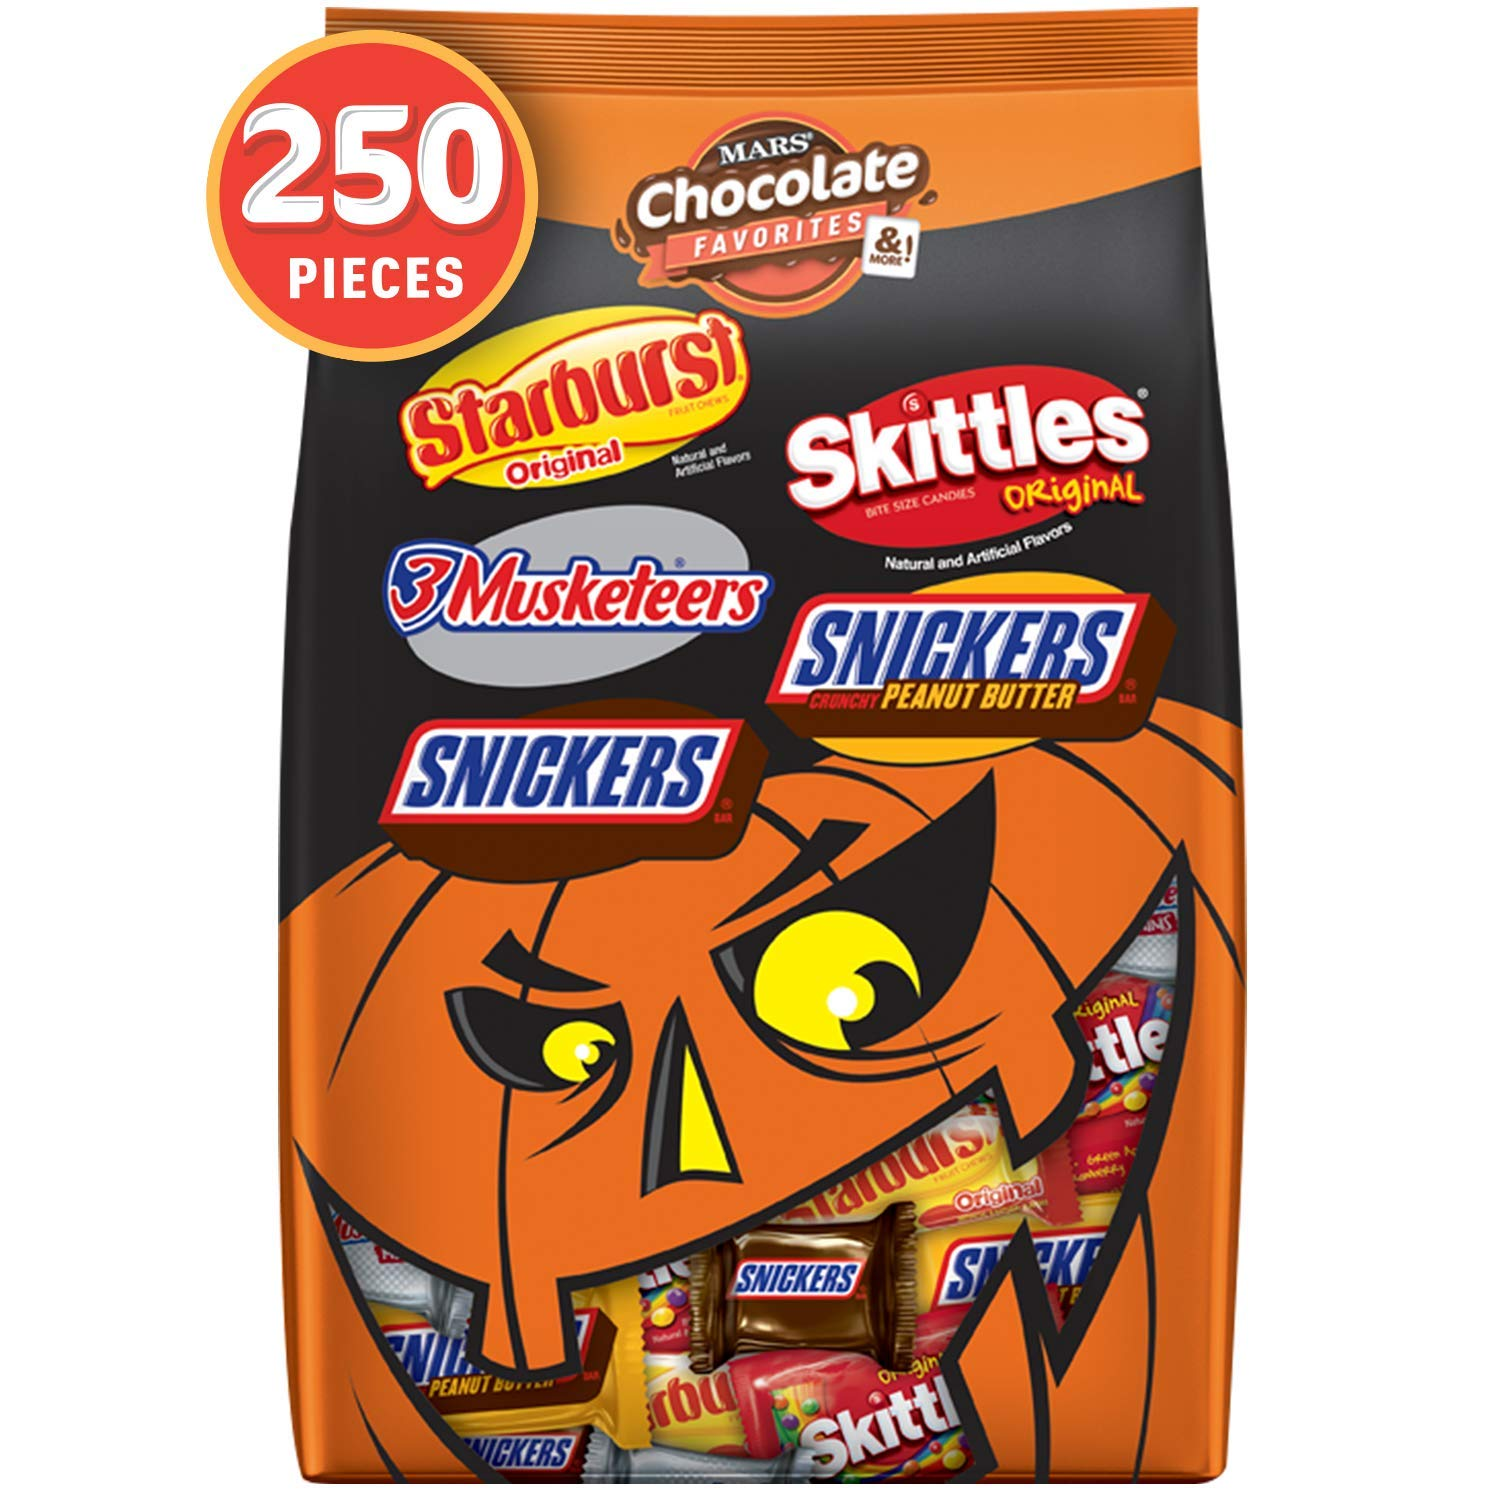 SNICKERS, 3 MUSKETEERS, SKITTLES & STARBURST Halloween Chocolate Candy Variety Mix 95.1-Ounce 250 Count (Pack of 1) by Mars